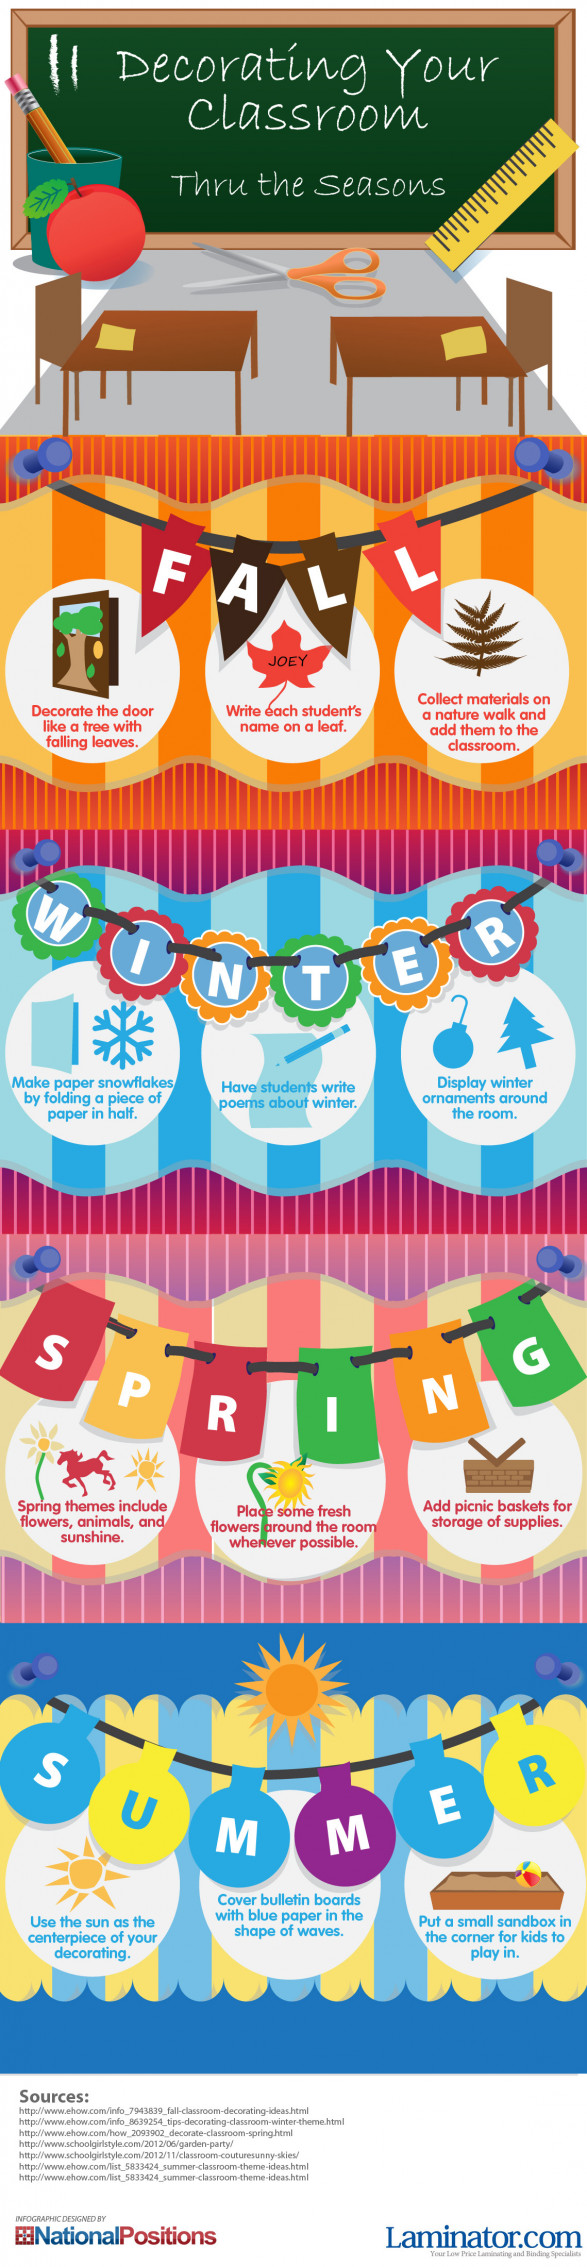 Decorating your Classroom thru the Seasons